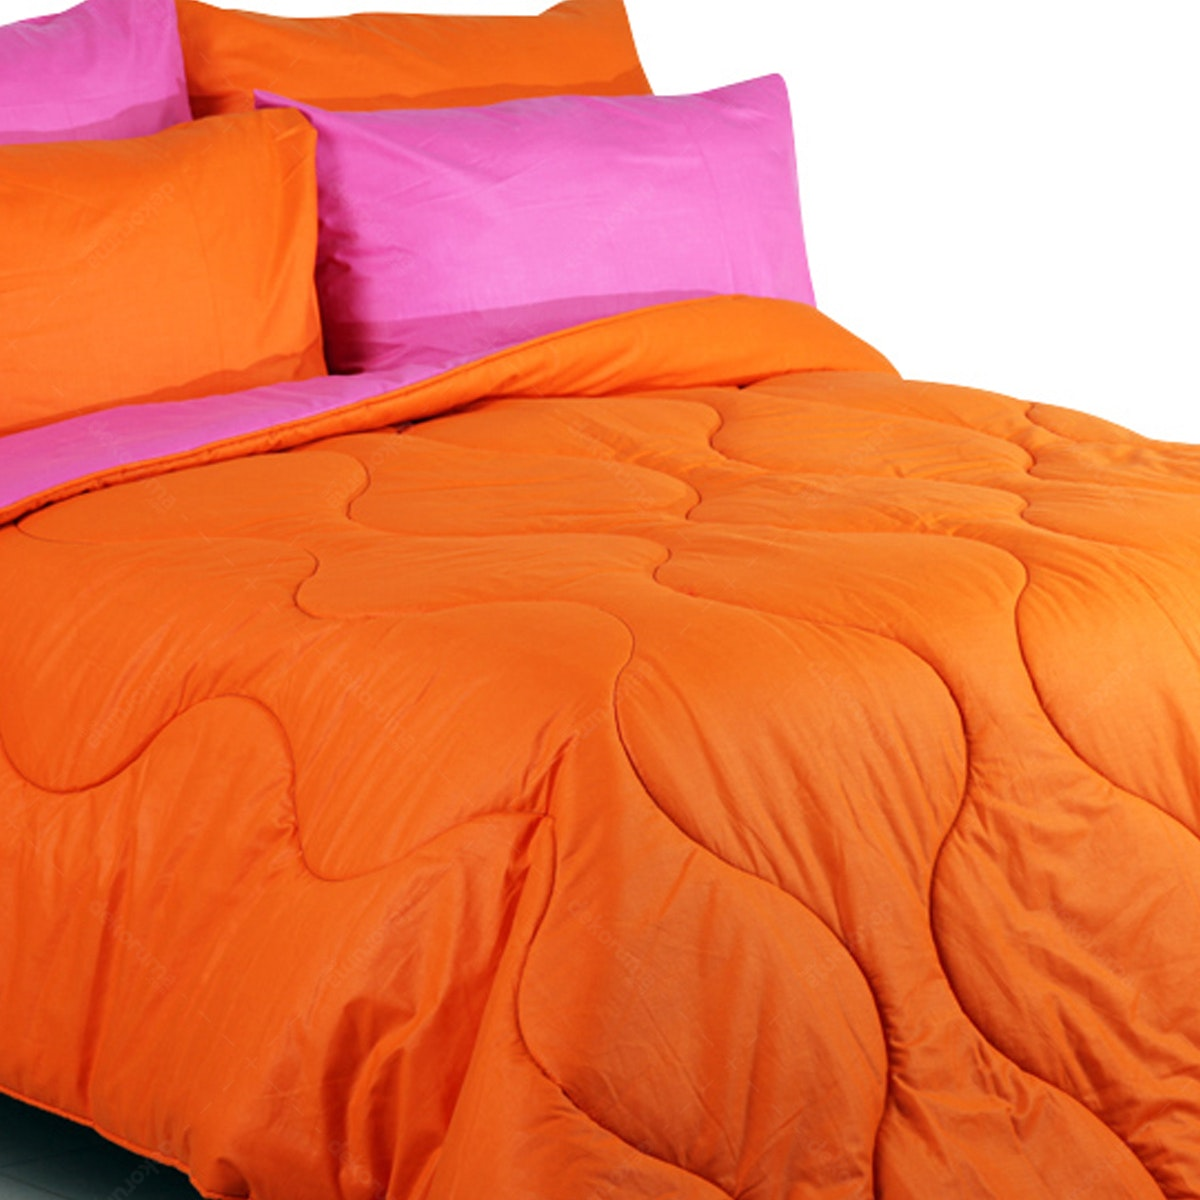 Sierra Bed Cover Dan Sprei Polos Orange Mix Fanta 160x200